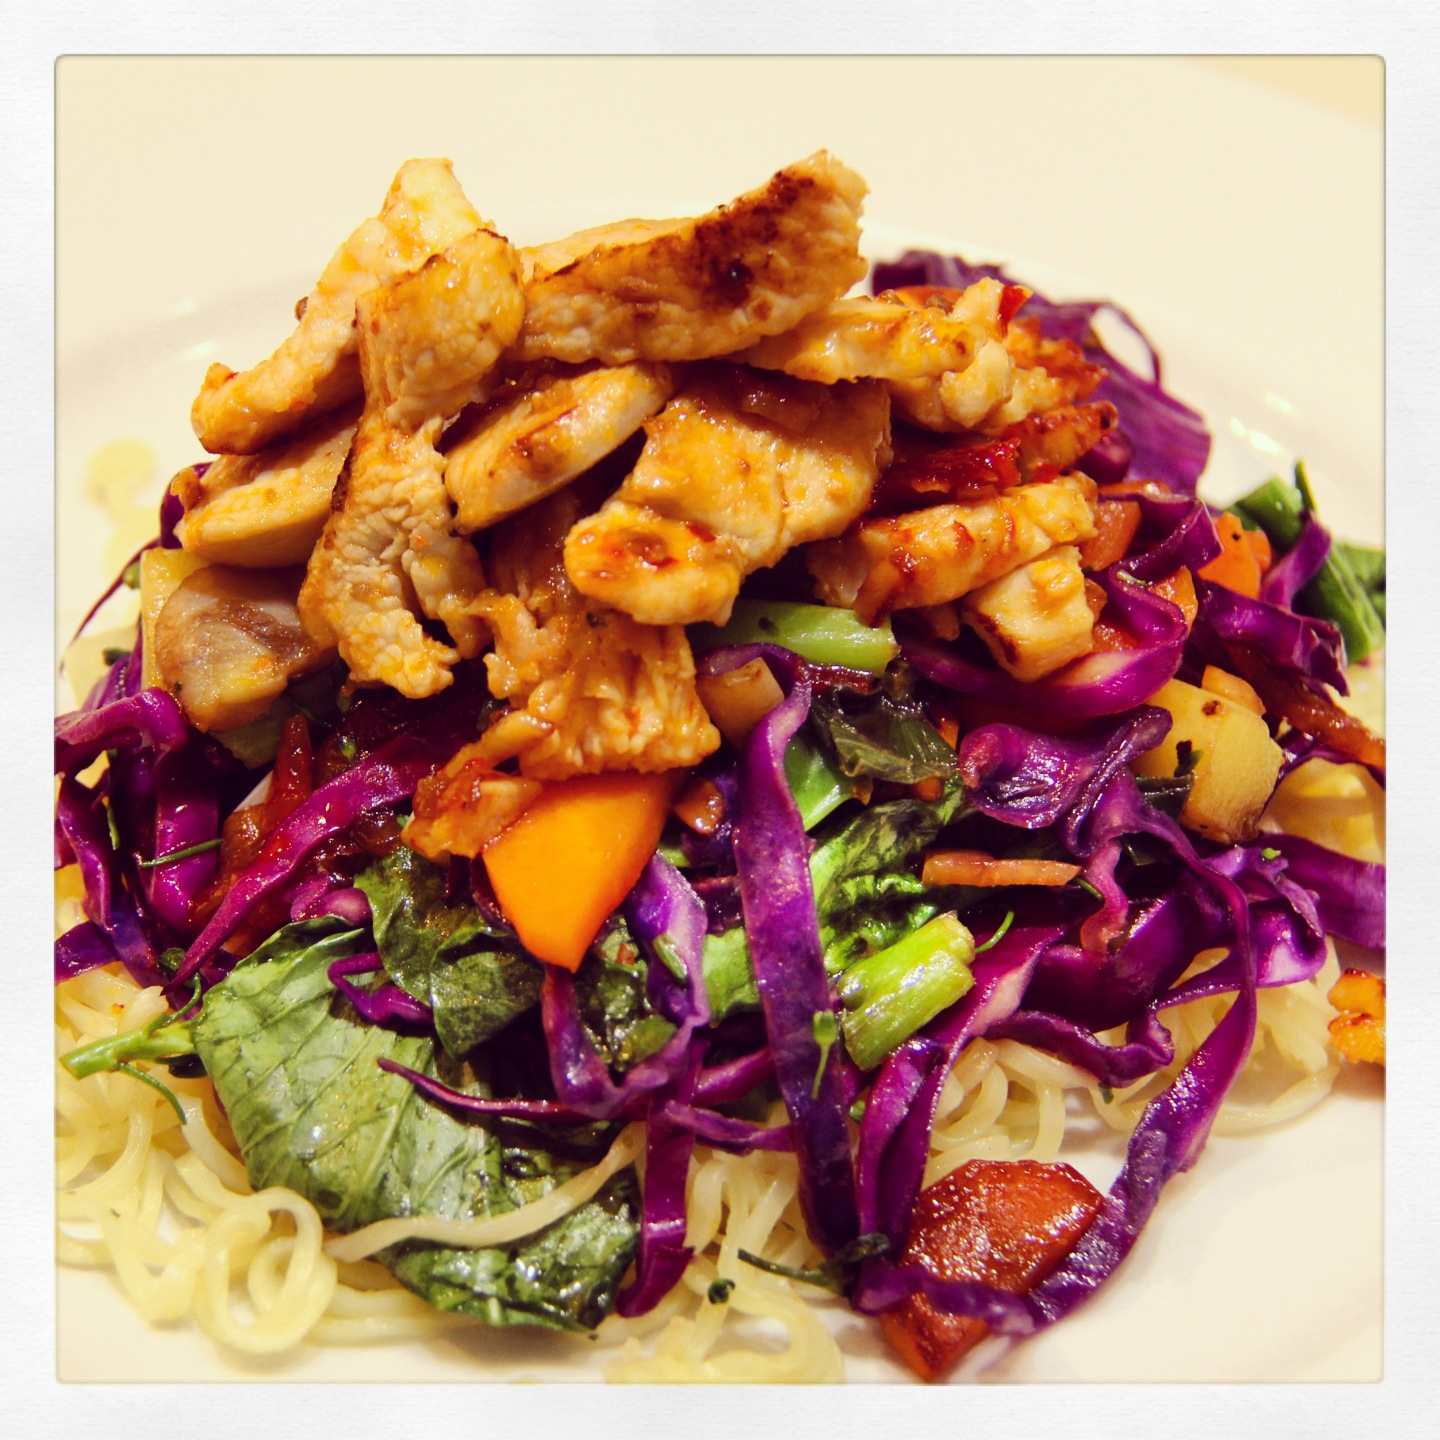 Chicken Chilli Onion and Cashew Stir Fry